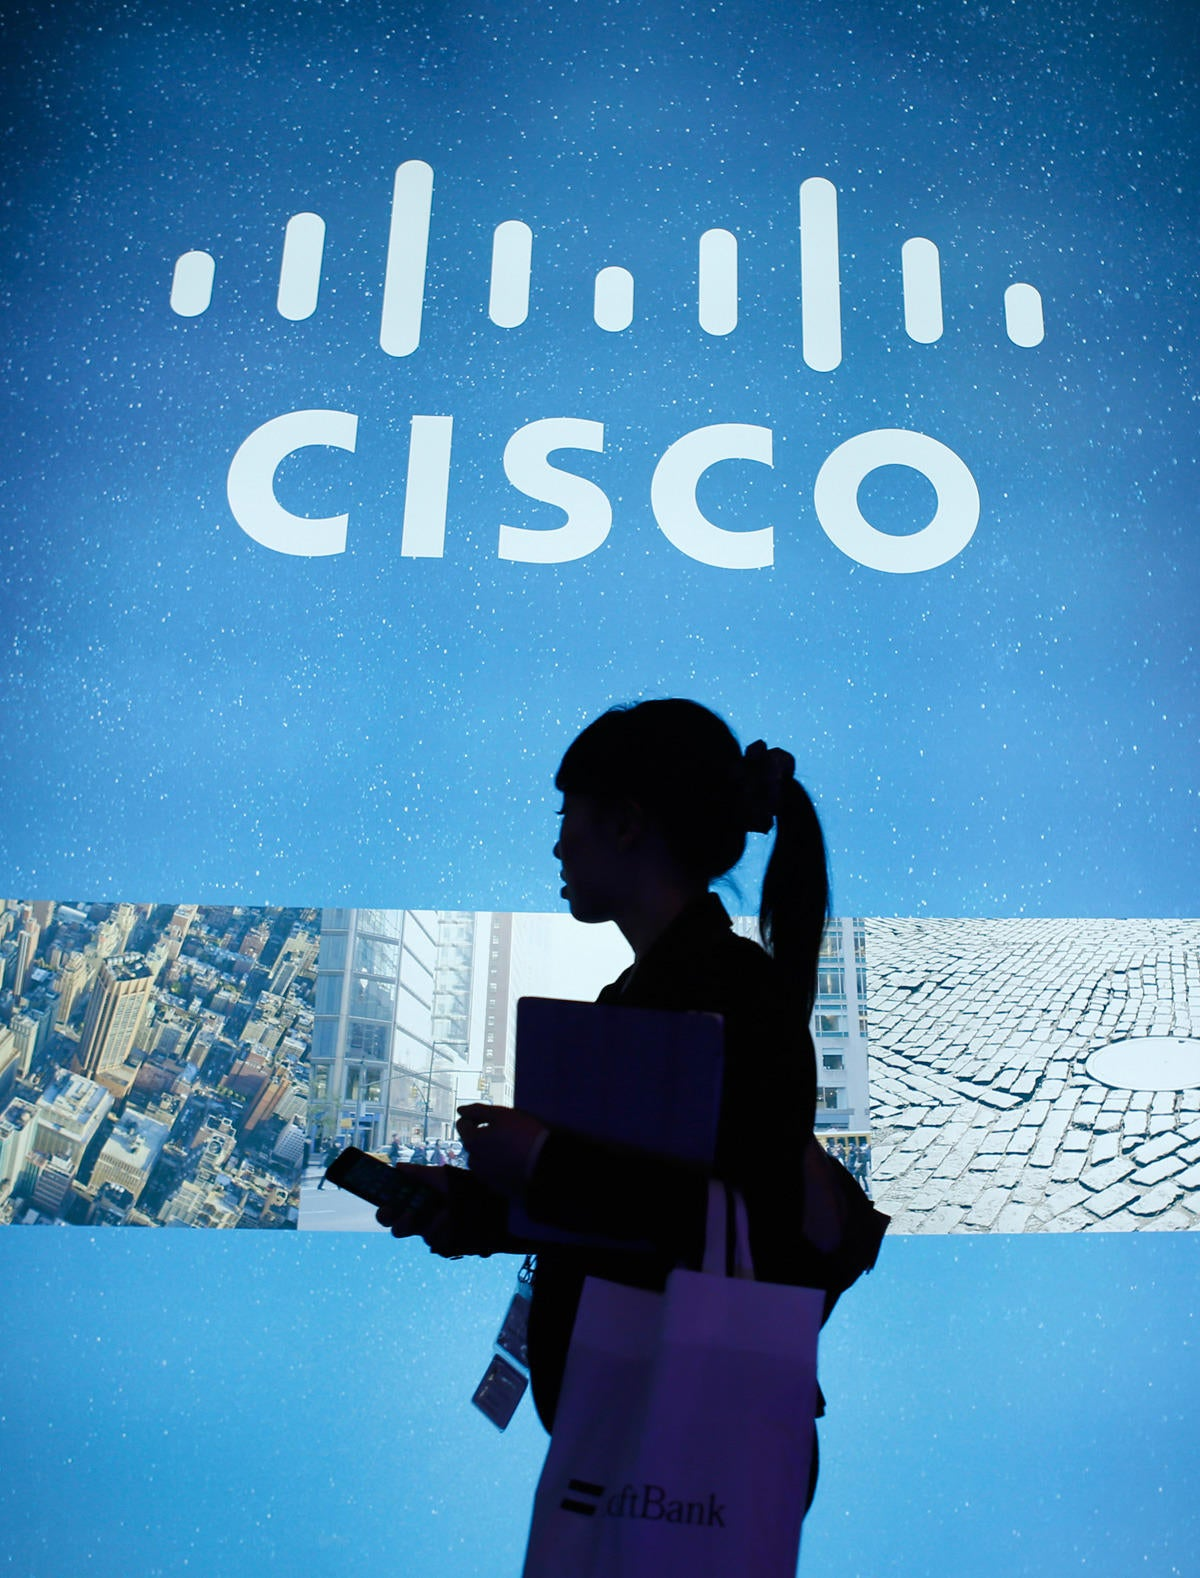 Cisco acquires IoT company Jasper $1.4 billion